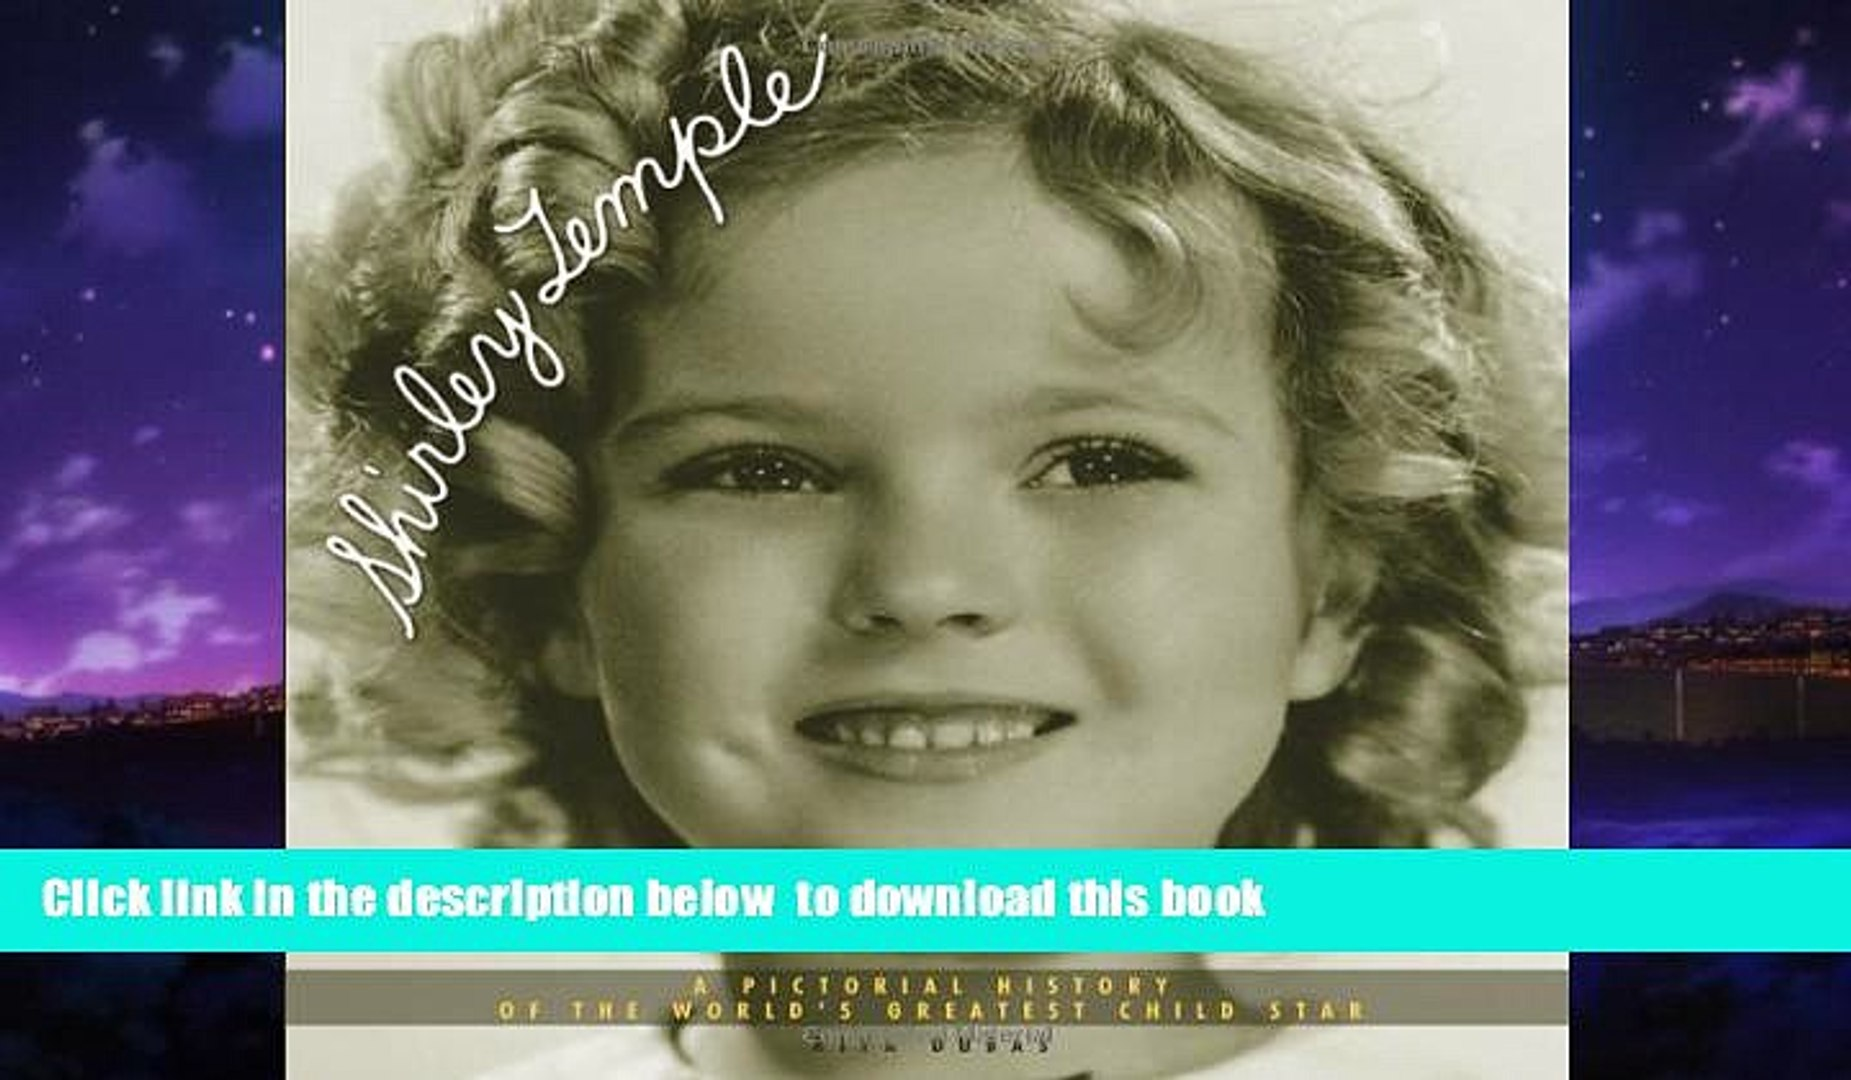 liberty book  Shirley Temple: A Pictorial History of the World s Greatest Child Star [DOWNLOAD]